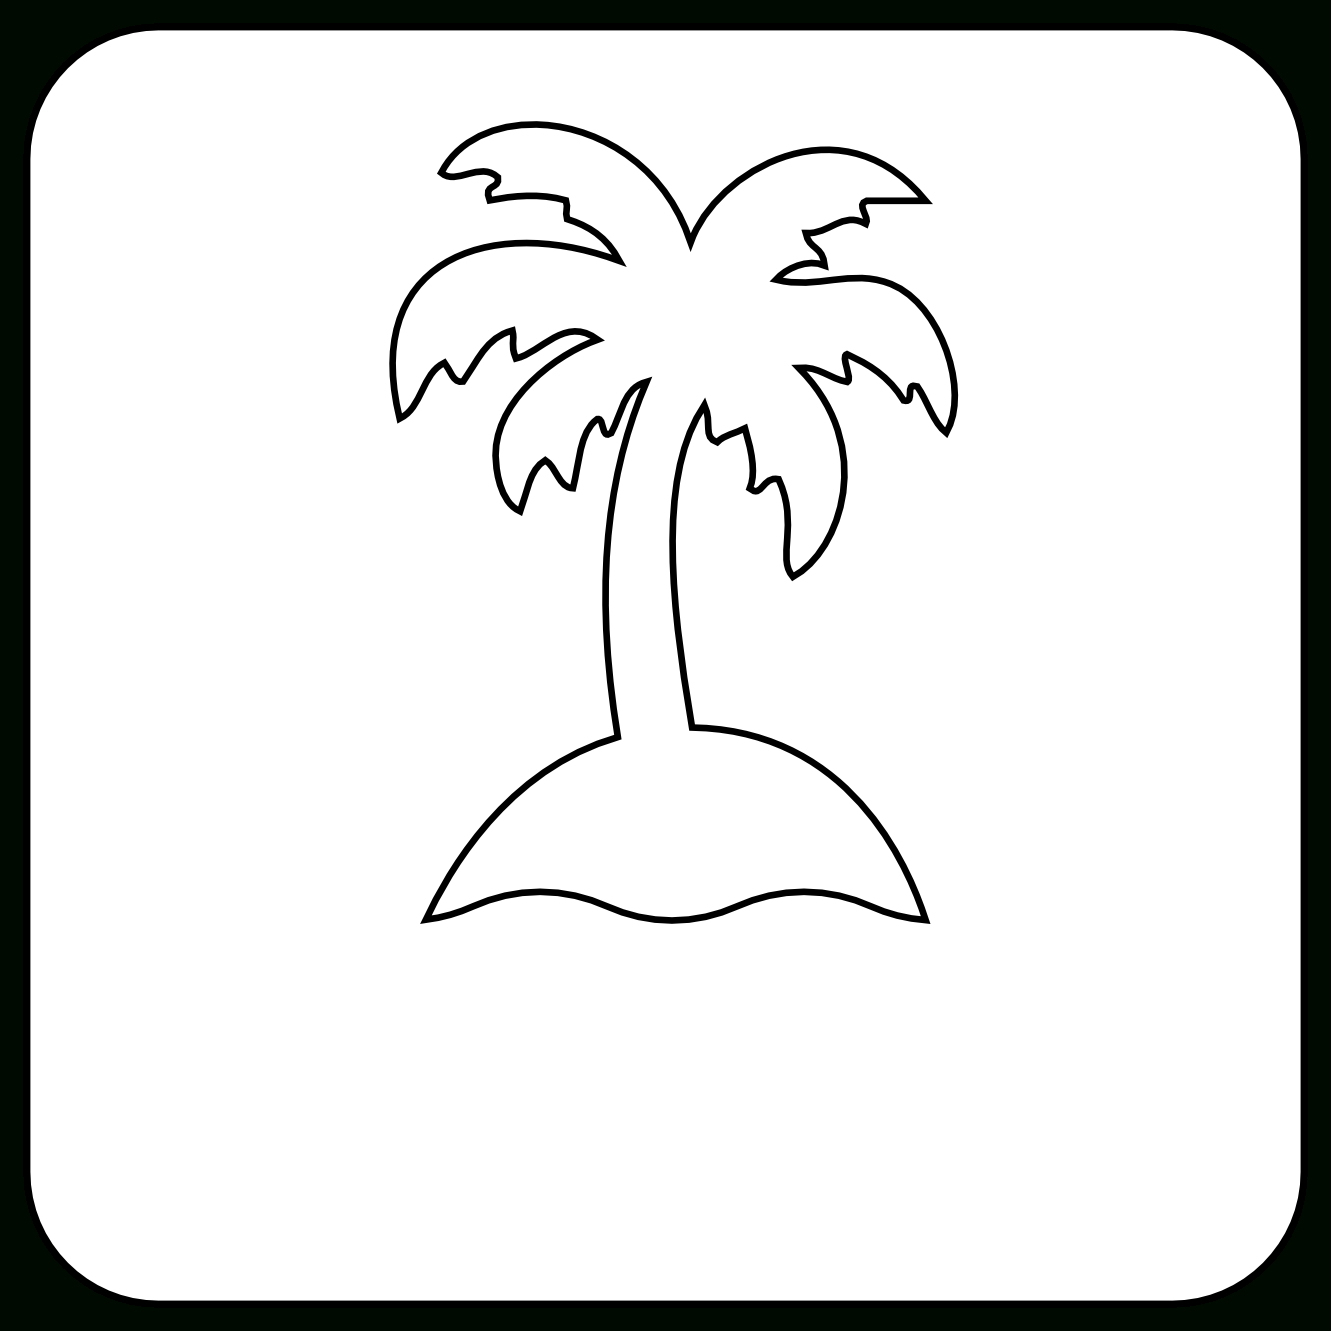 1331x1331 Simple Drawing Of A Palm Tree Simple Black And White Tree Drawing